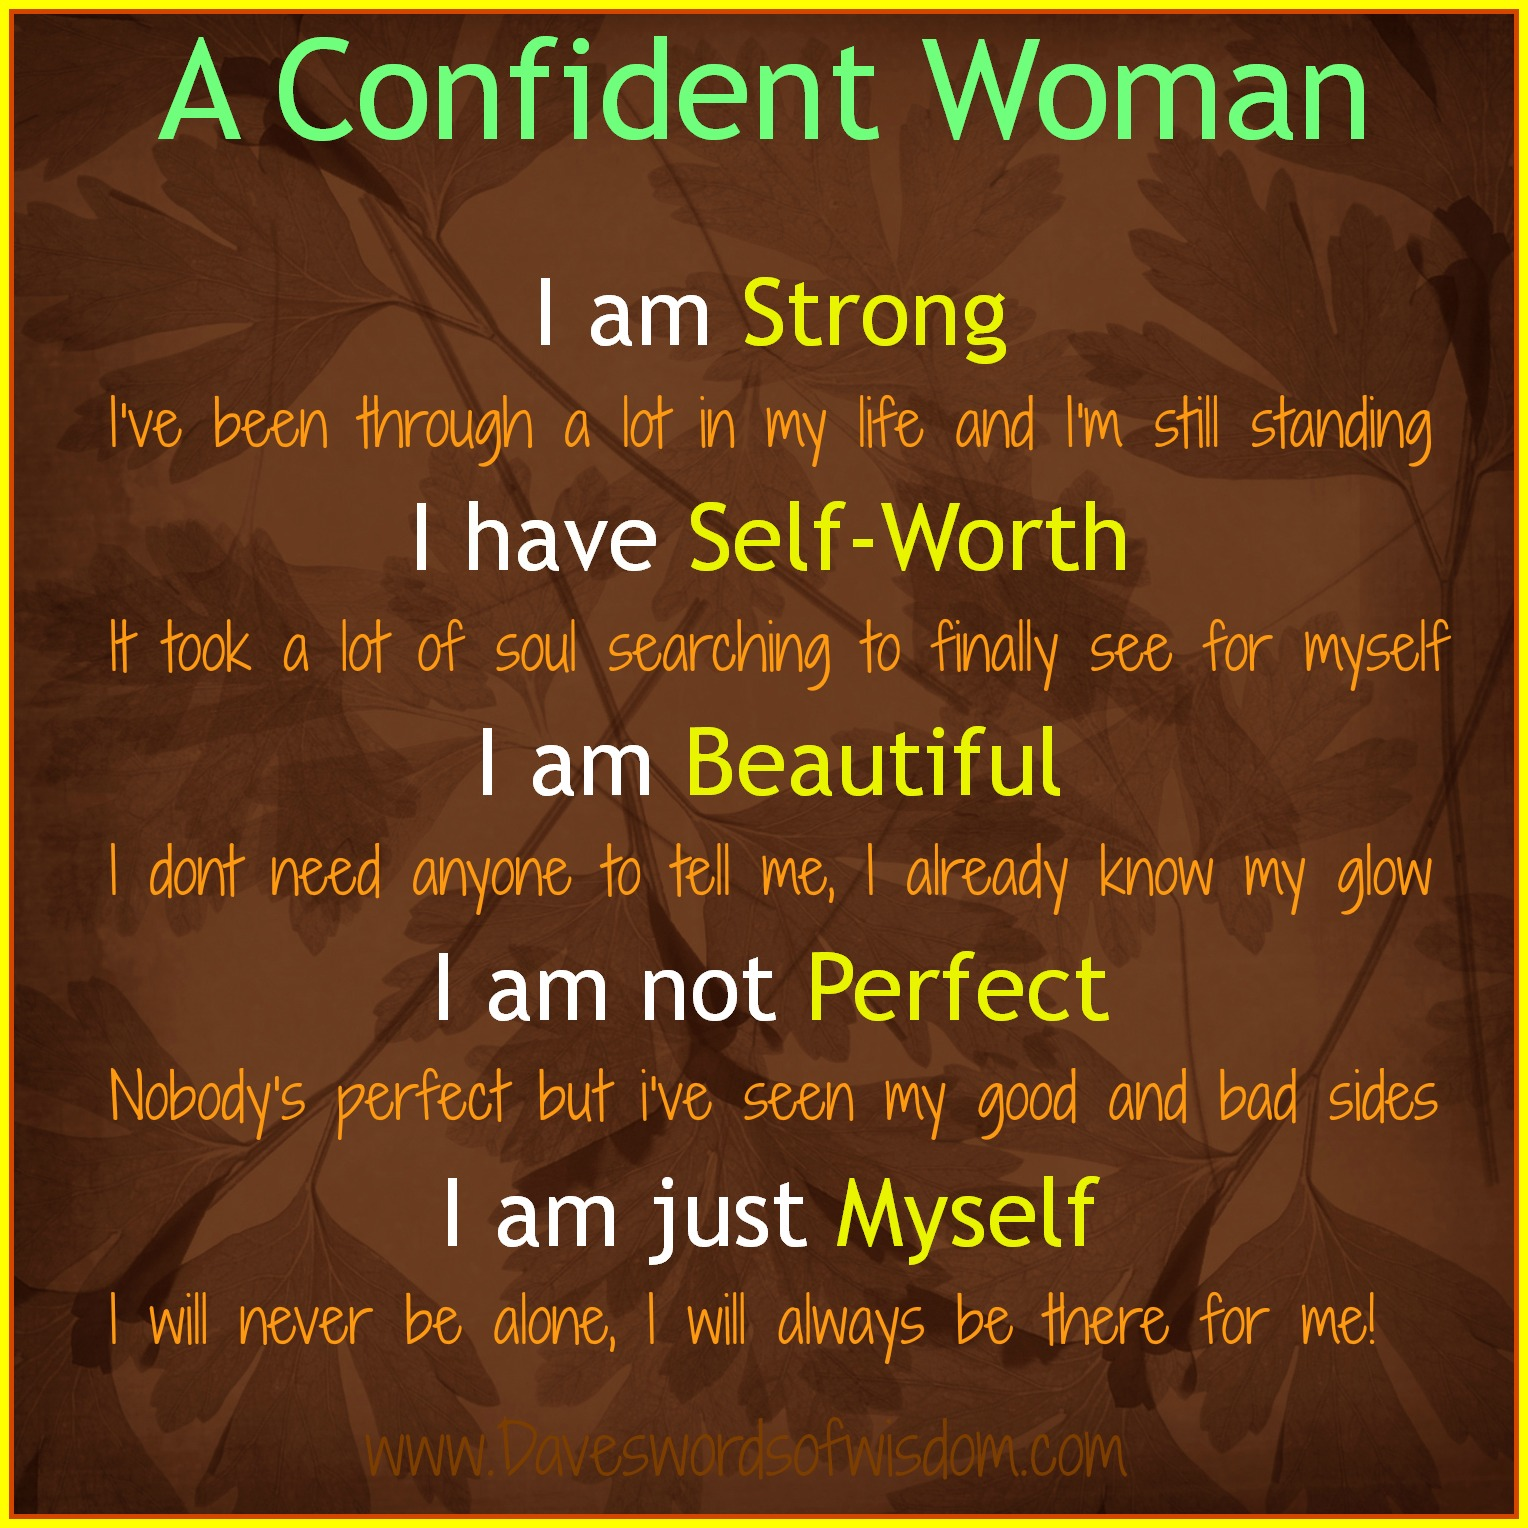 Confident Women Quotes Daveswordsofwisdom A Confident Woman